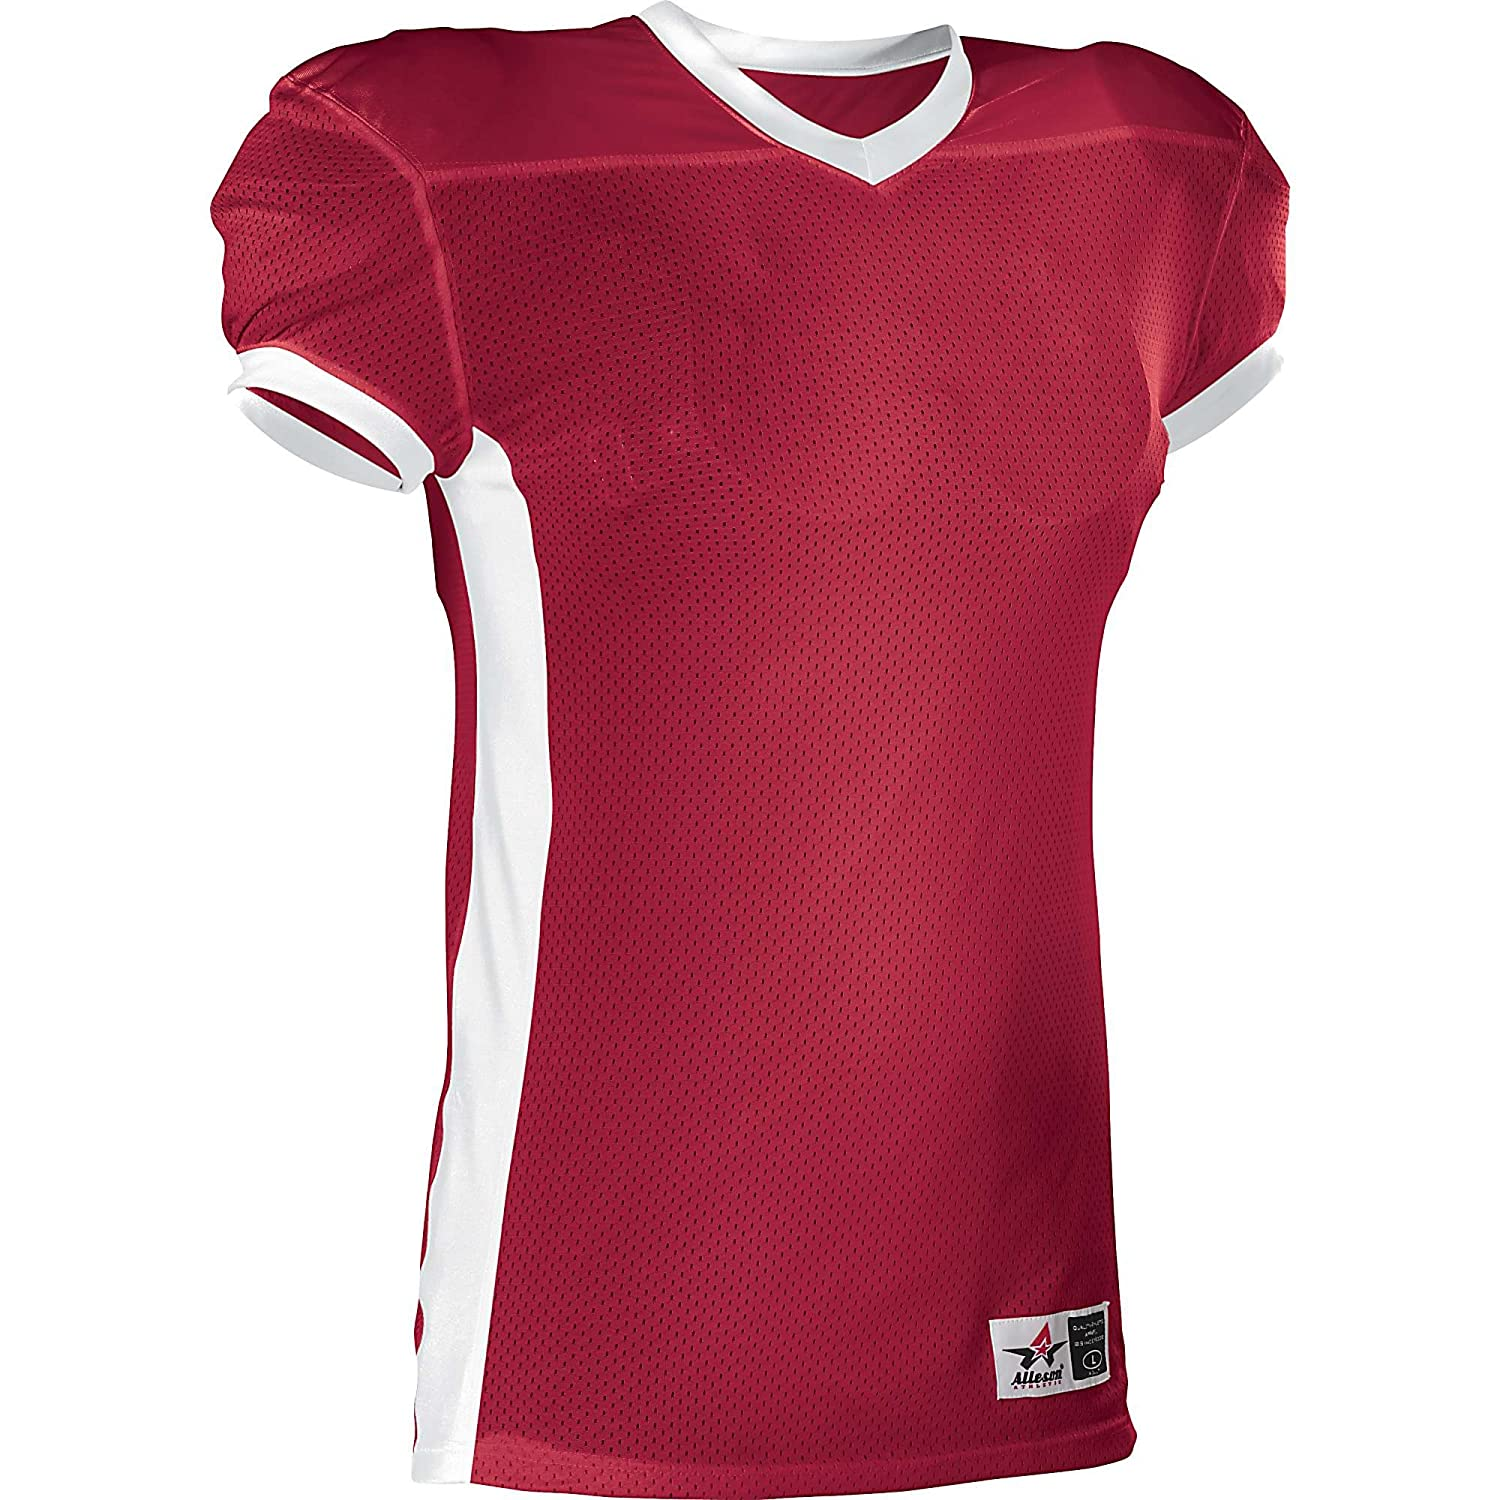 Alleson Youth Football Jersey B00FFJOMH8 レッド Small